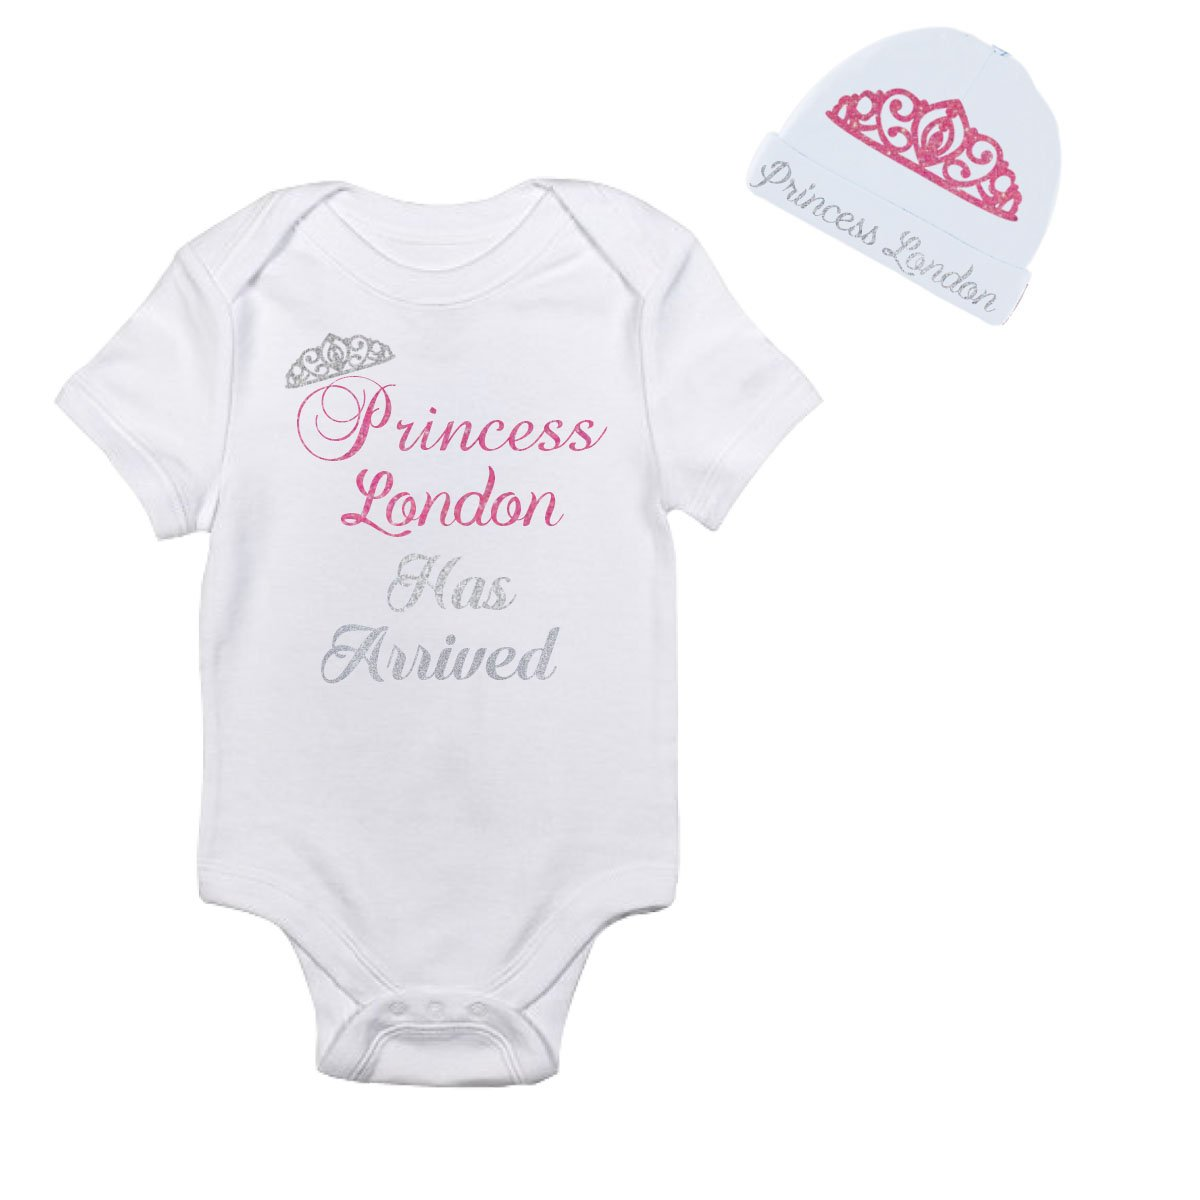 09d359bff Amazon.com: Sparkle Princess has Arrived Personalized with Hat Baby Onesie  Bodysuit: Clothing